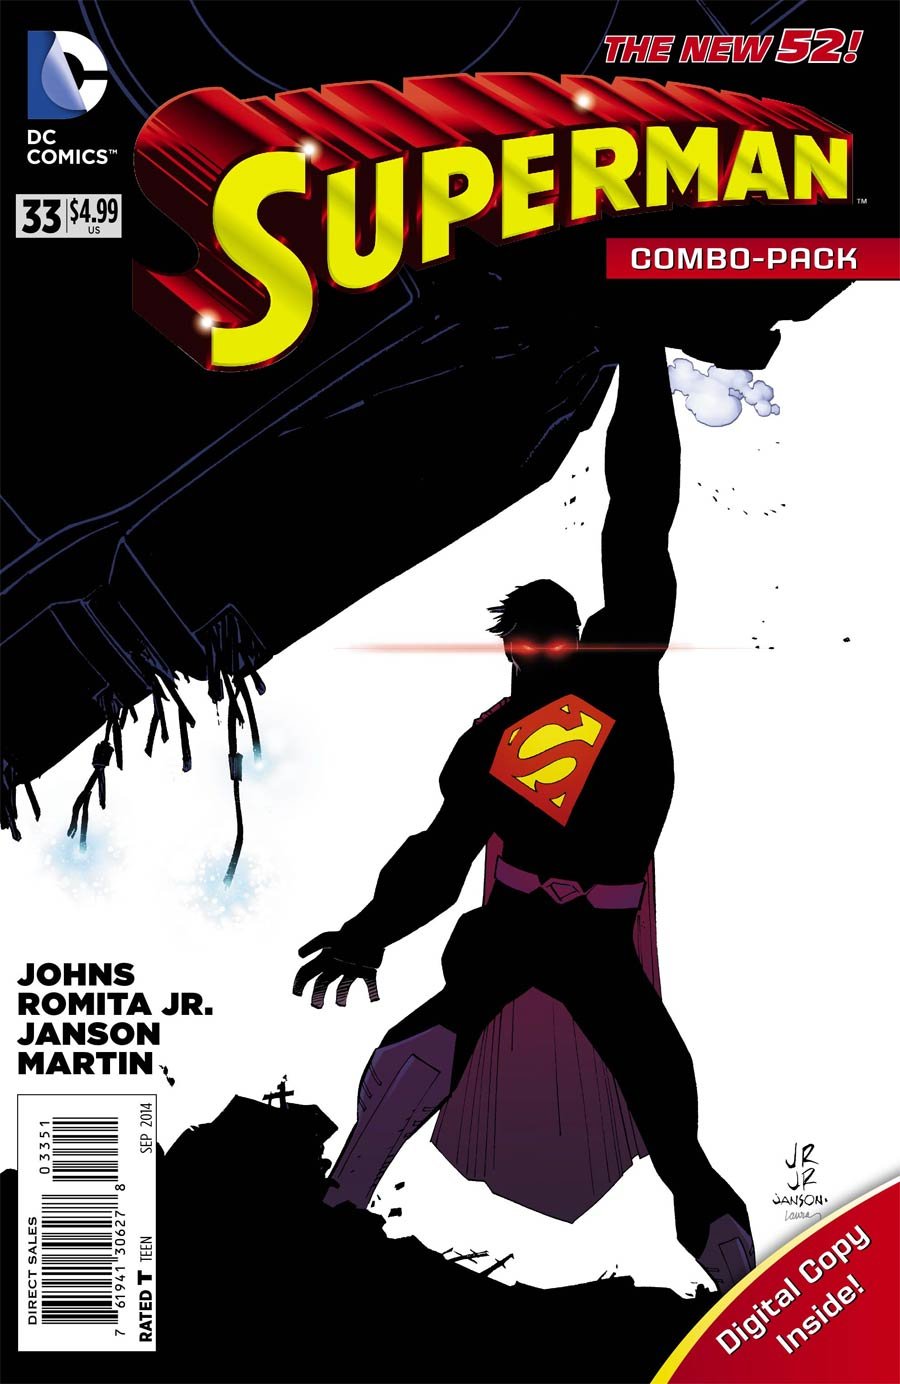 Superman Vol 4 #33 Cover C Combo Pack With Polybag